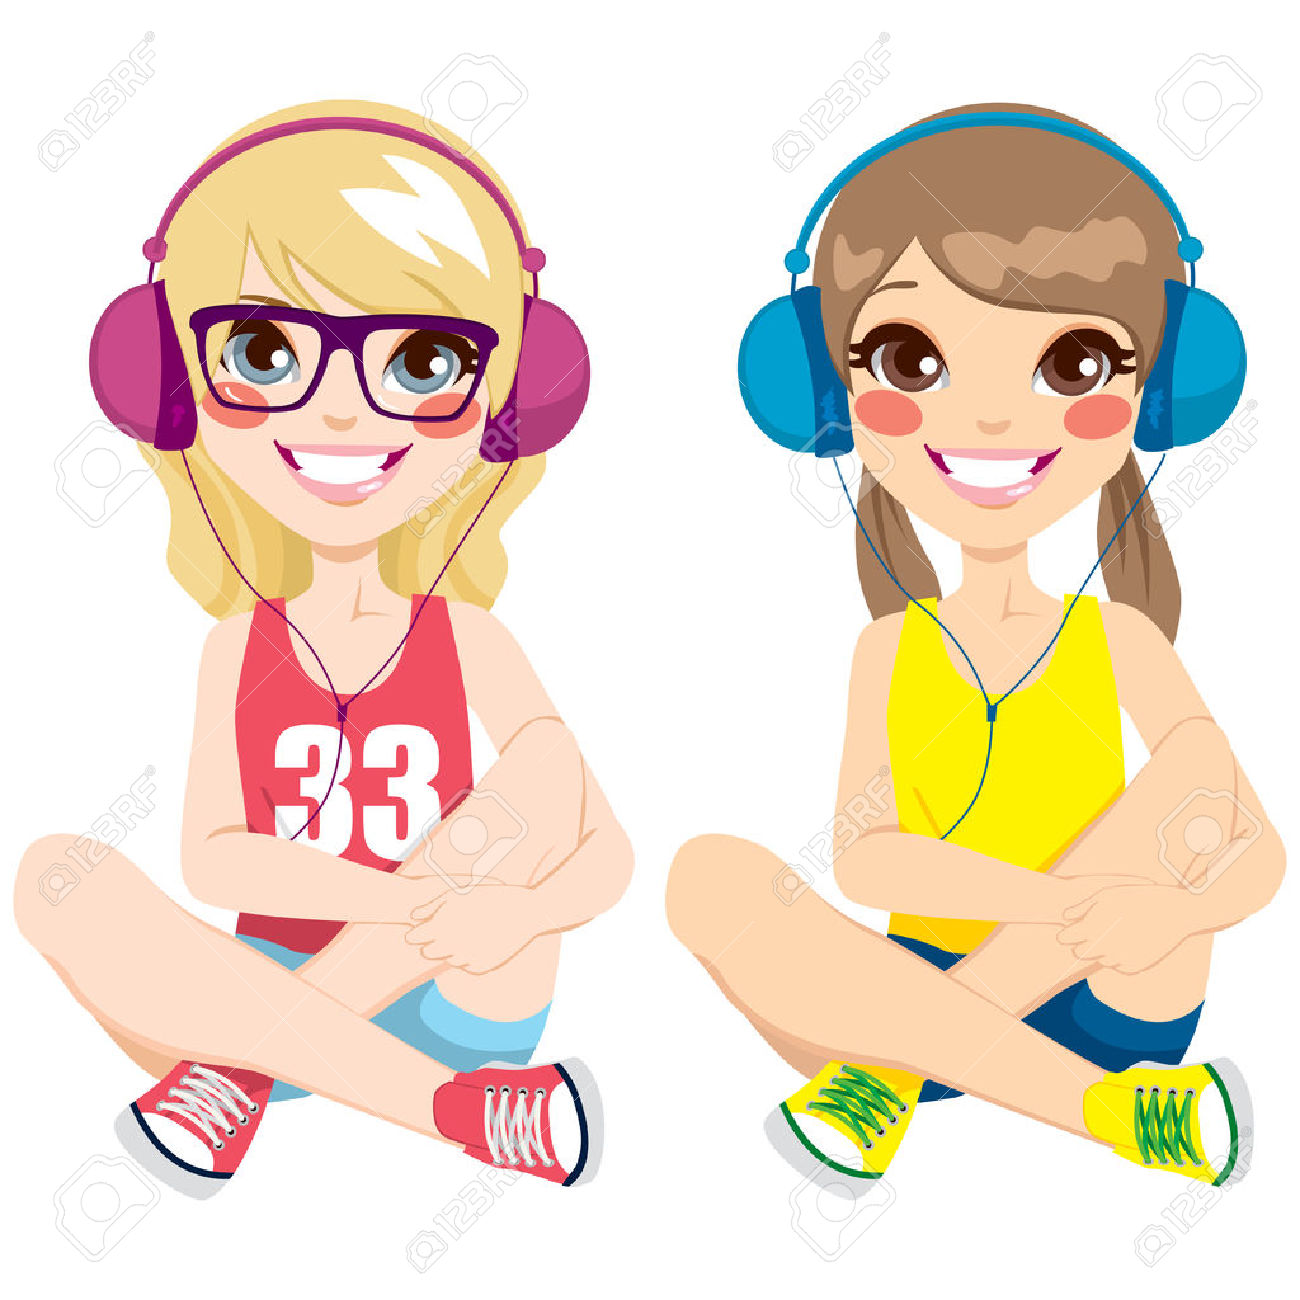 1300x1300 Girl Having Fun With Music Headphones Clipart, Explore Pictures